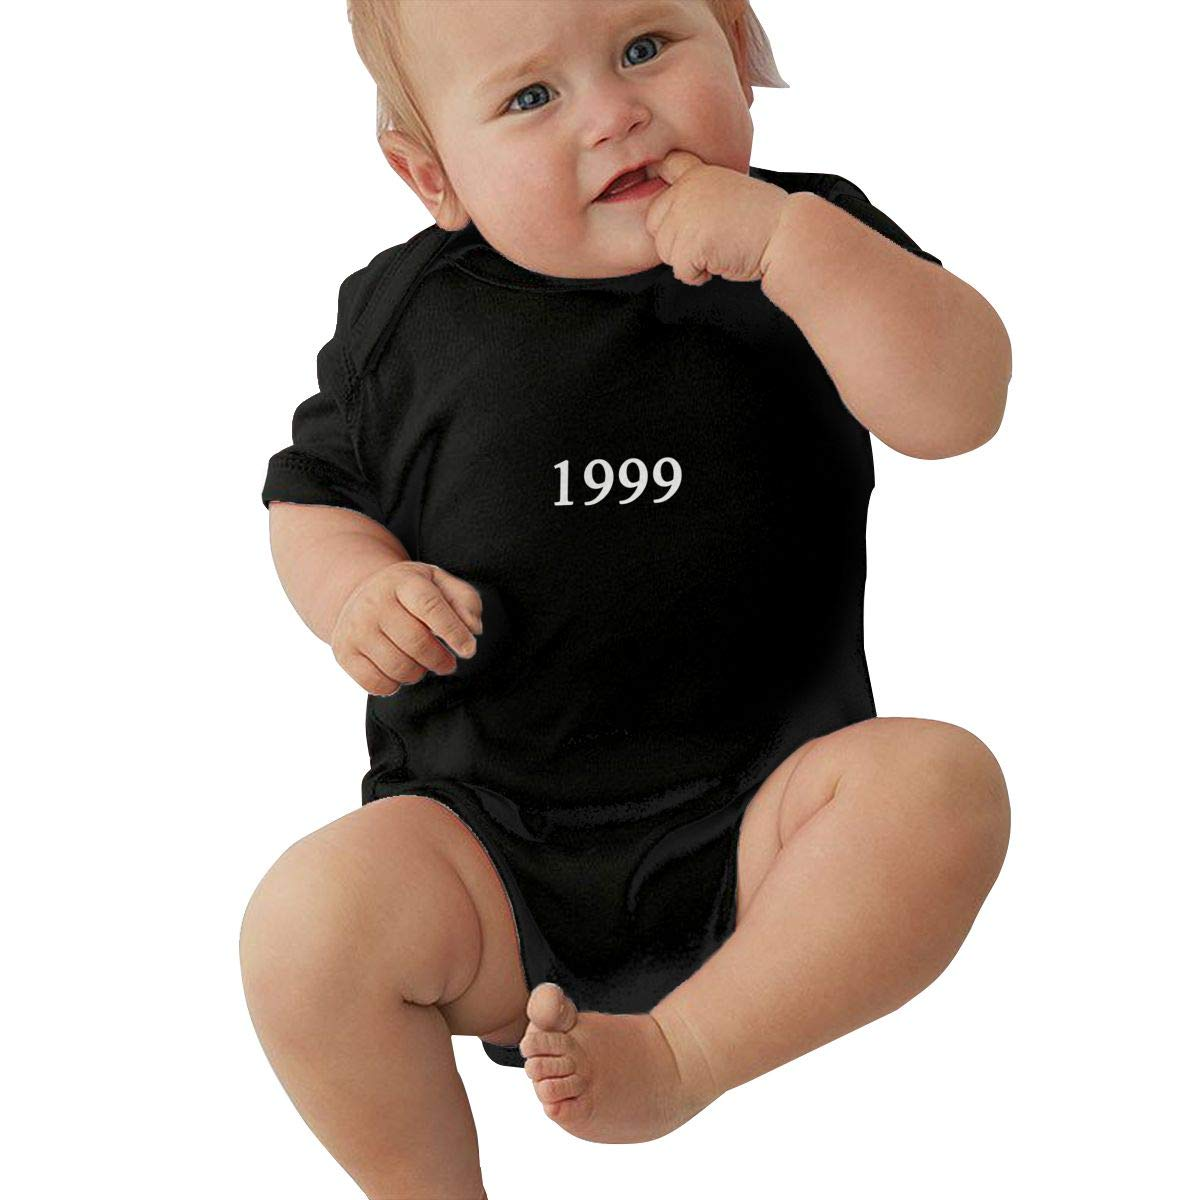 Infant Baby Boys Bodysuit Short-Sleeve Onesie Made in 1999 Birthday AABB Print Outfit